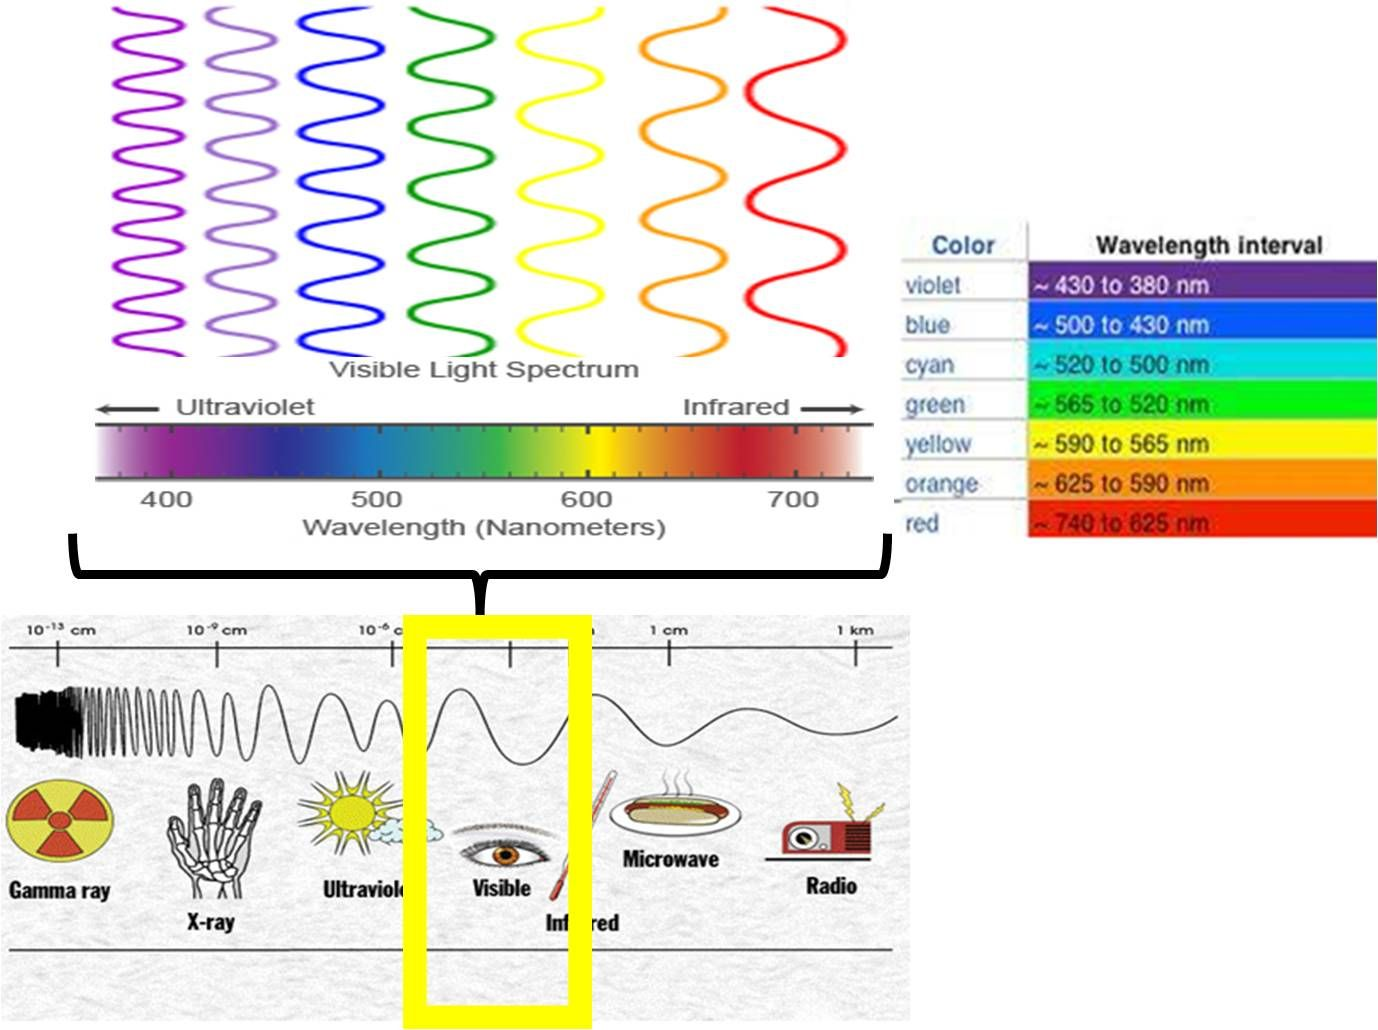 worksheet Electromagnetic Spectrum Worksheet pin by jacqueline calip on human energy field pinterest visible light spectrum a small part of the electromagnetic that we can actually see